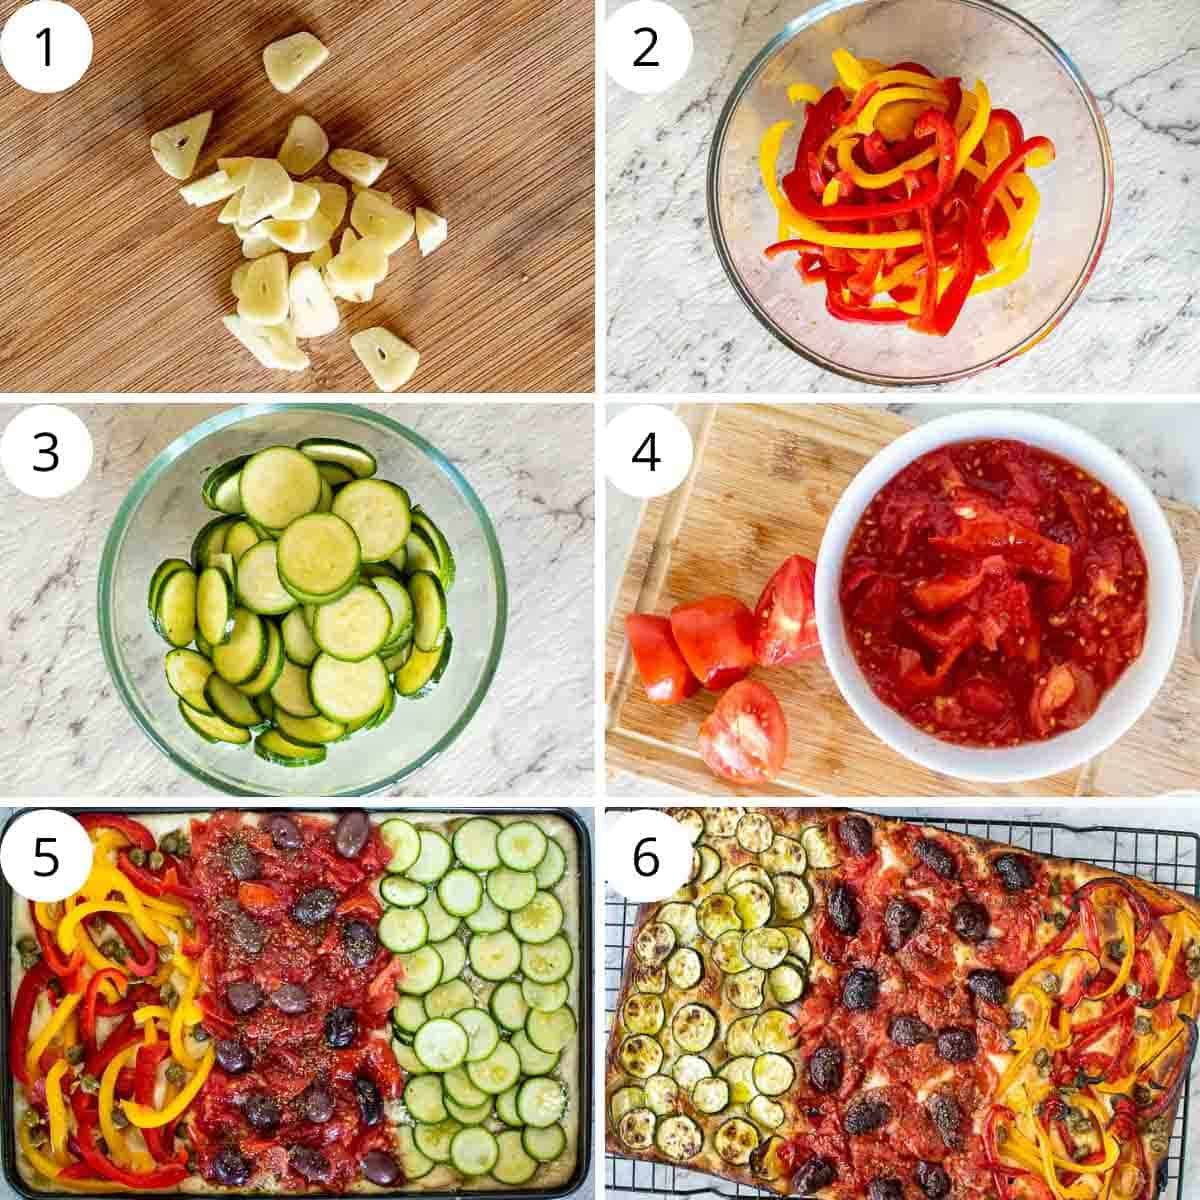 6 step photo collage showing how to make focaccia with different toppings.